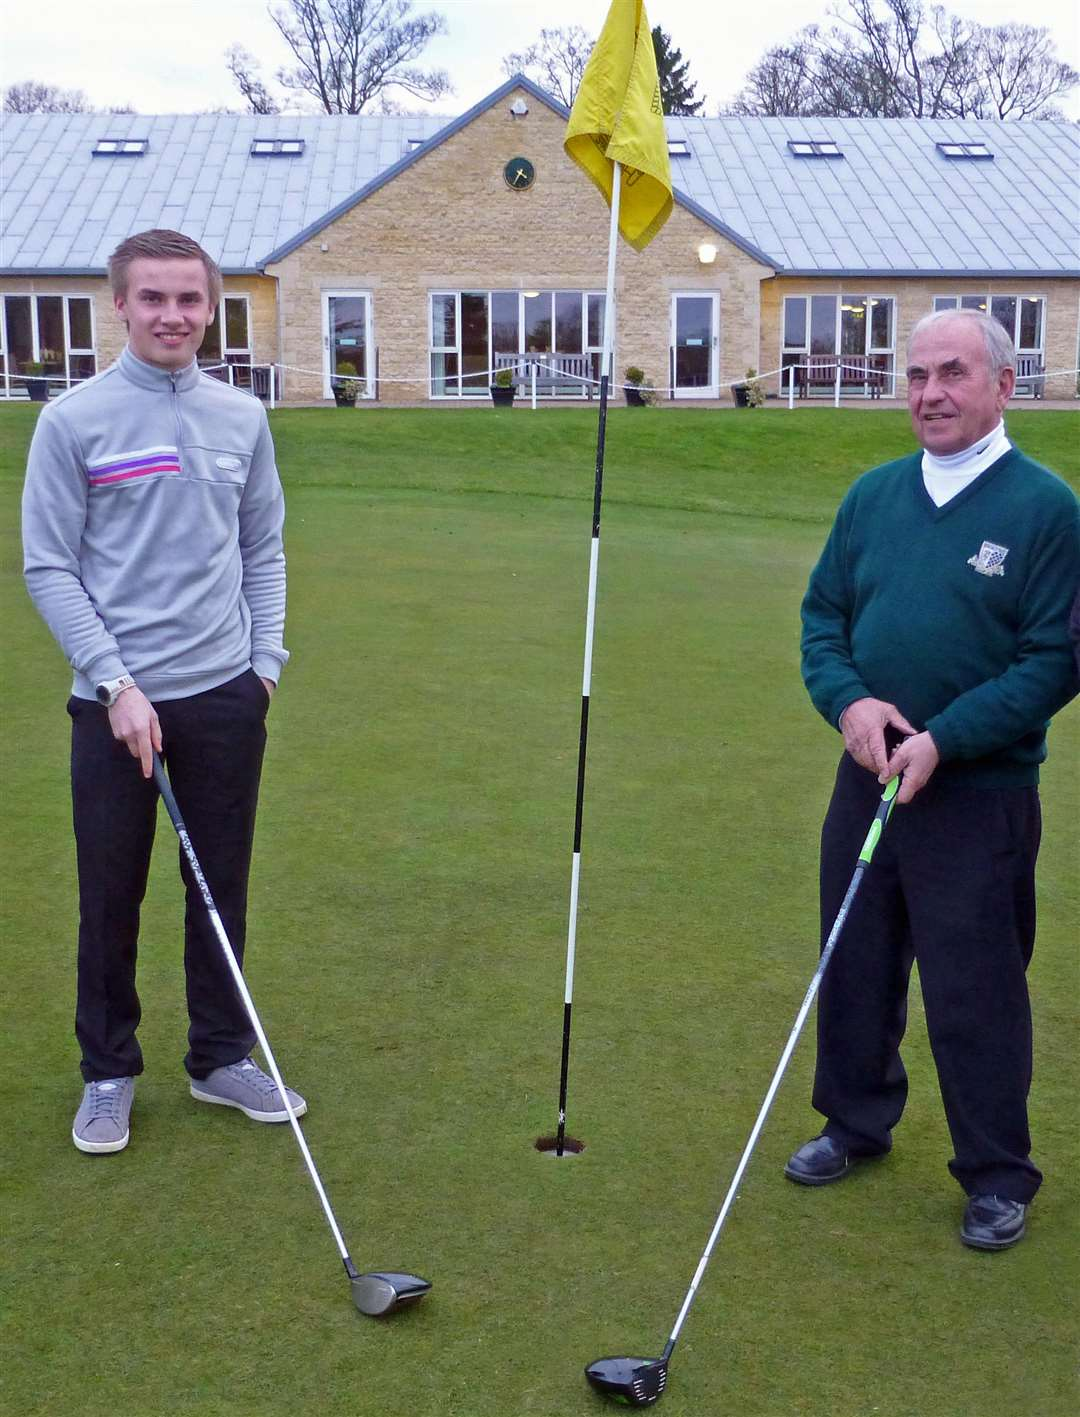 Jordan and John Mayman reached the Winter League quarter-finals at Burghley Park as winners of their division. (7143805)